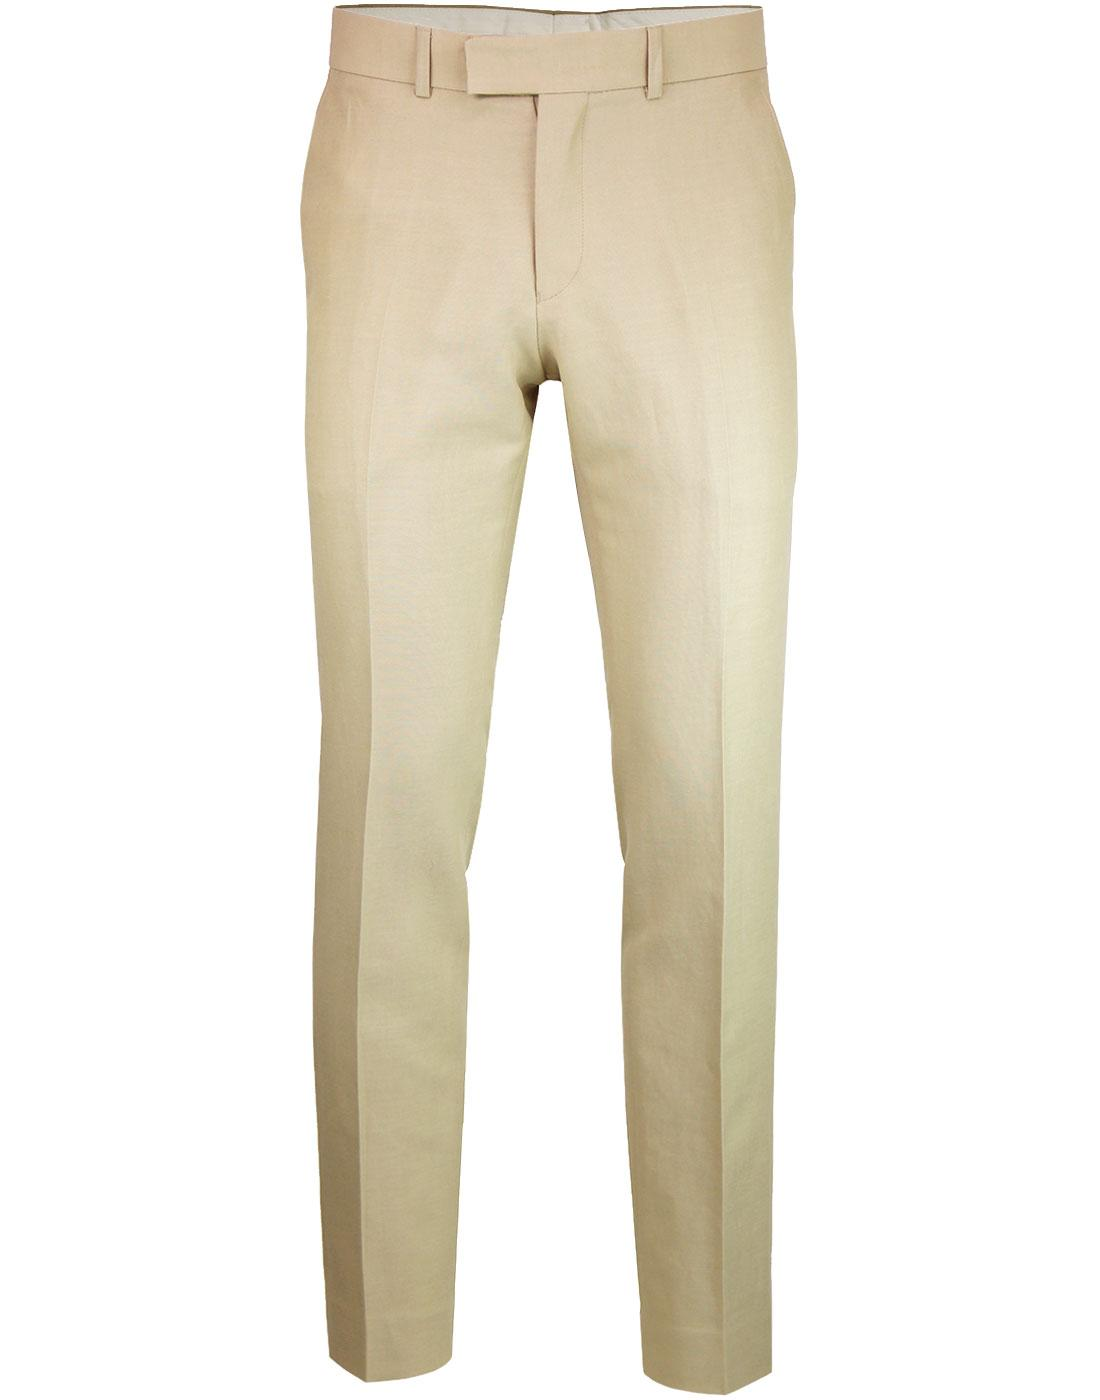 Radisson GIBSON LONDON Smart Plain Trousers STONE